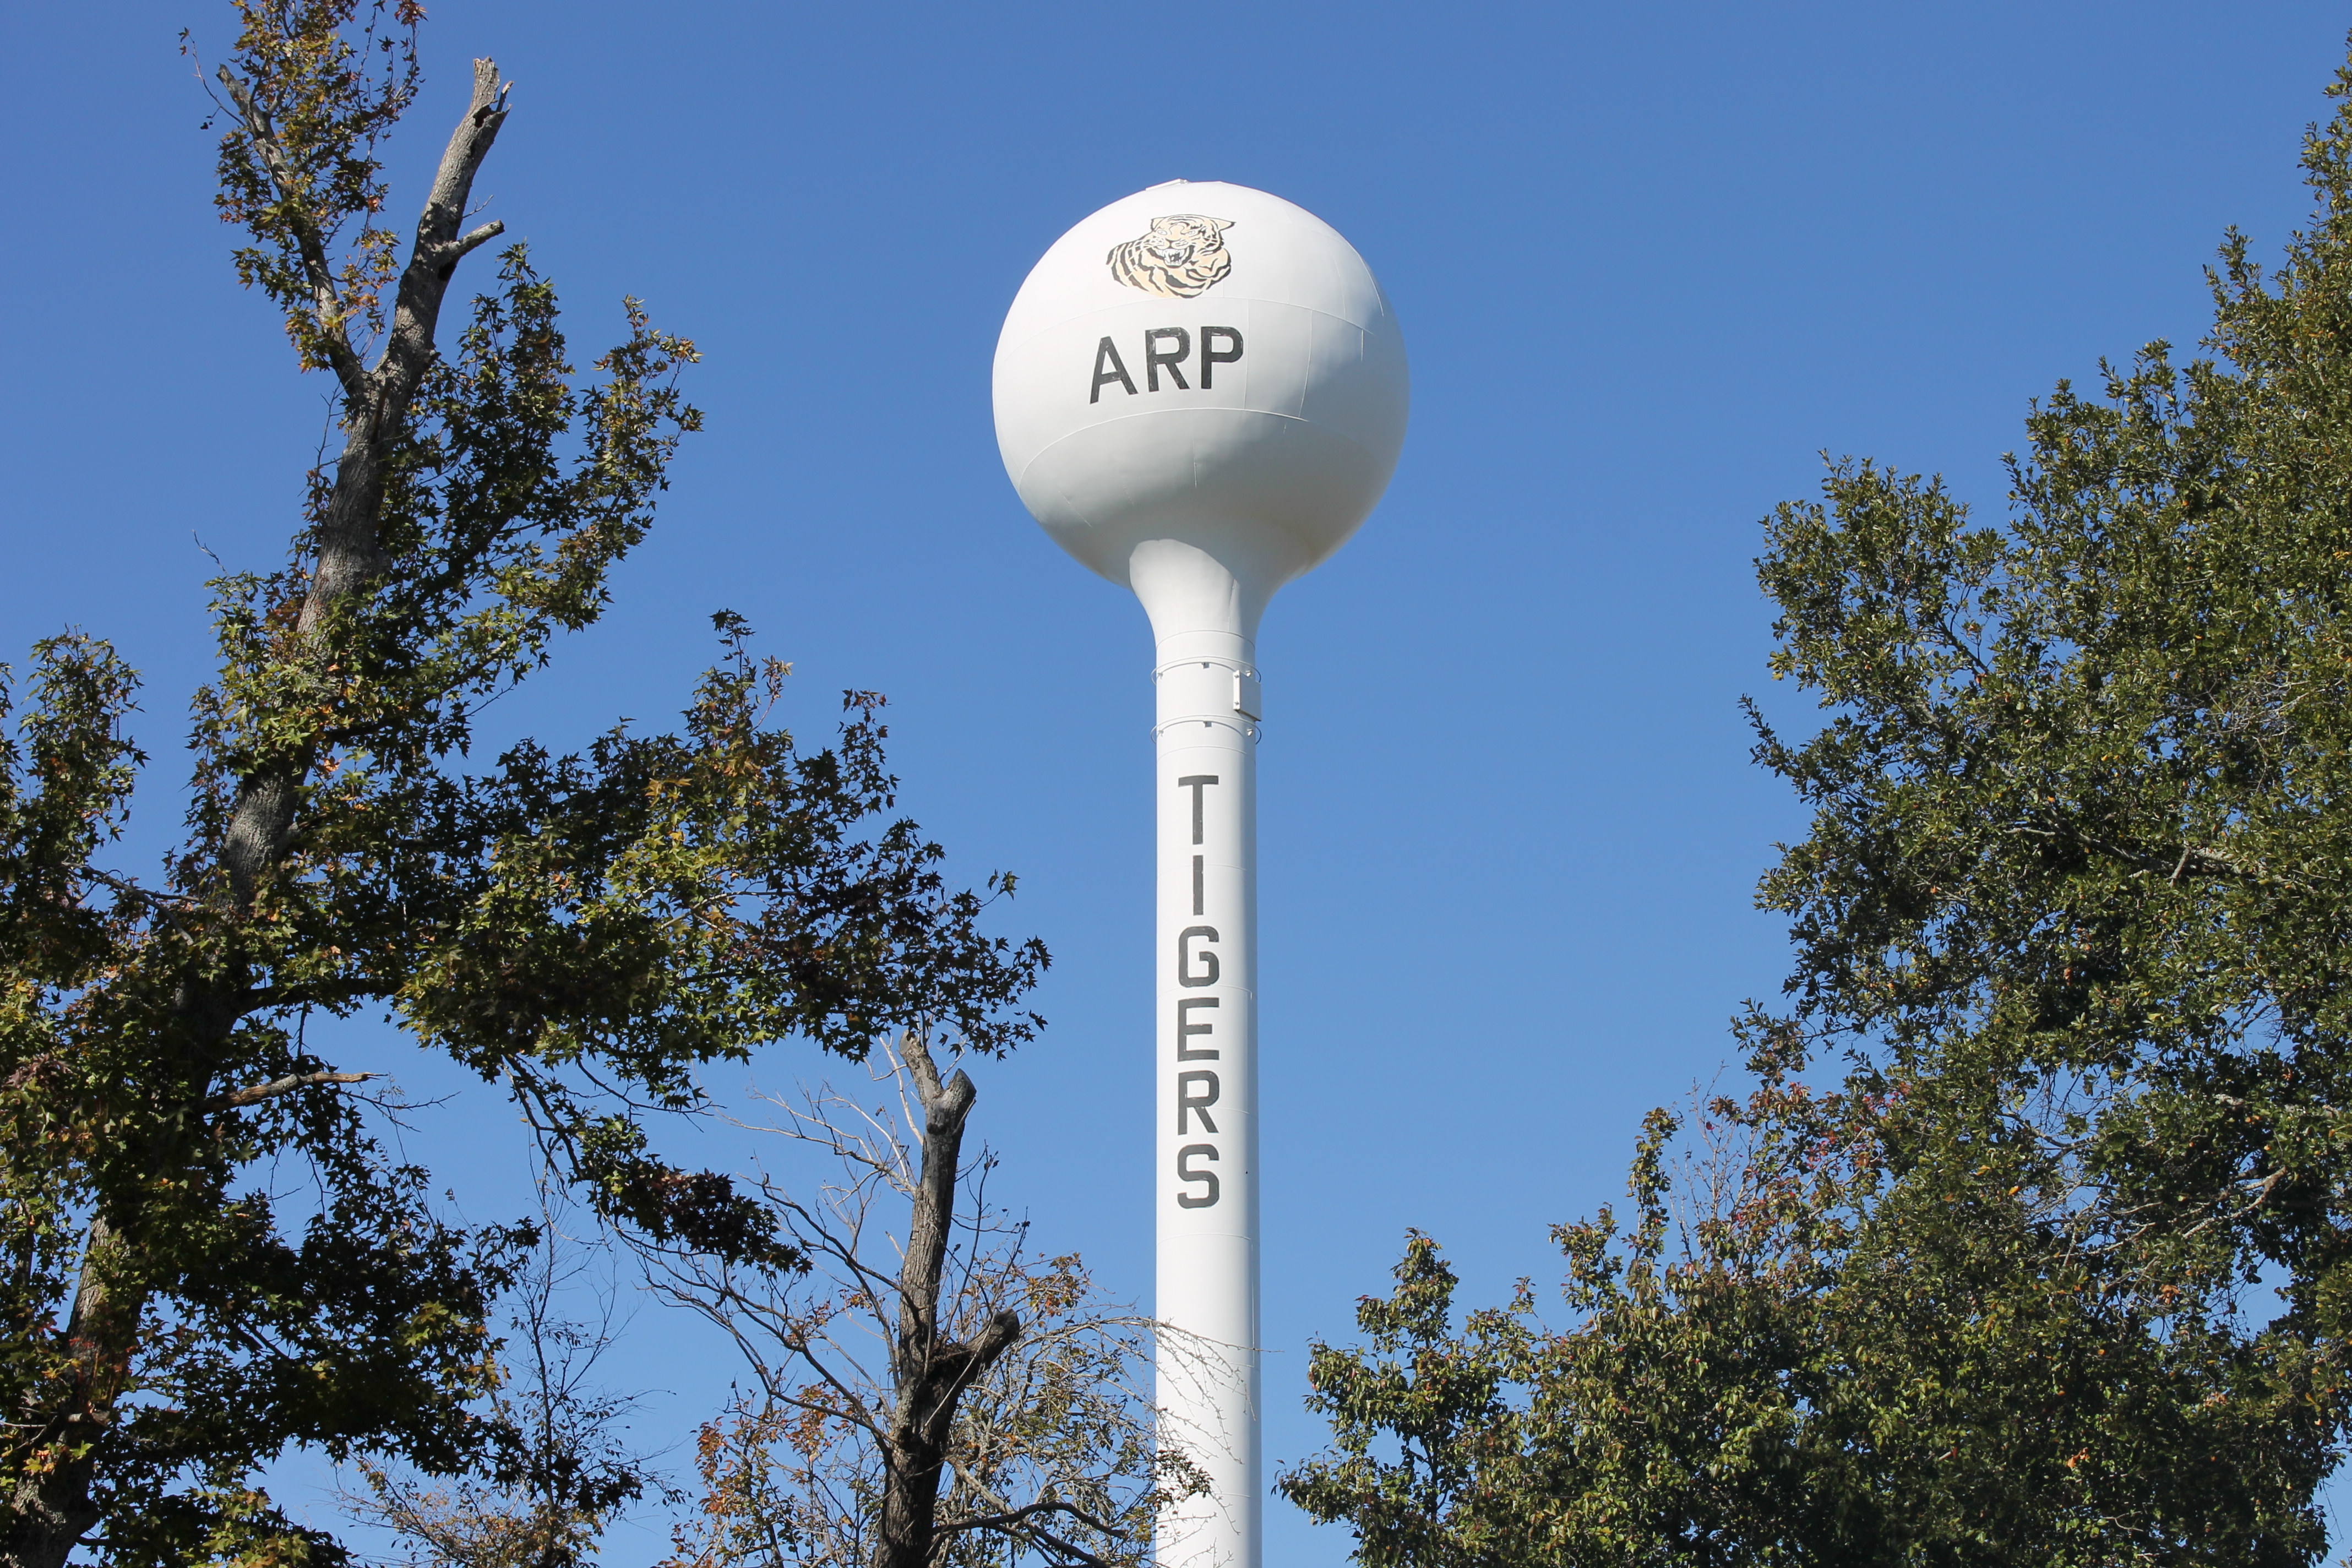 Arp Funeral Homes, funeral services & flowers in Texas